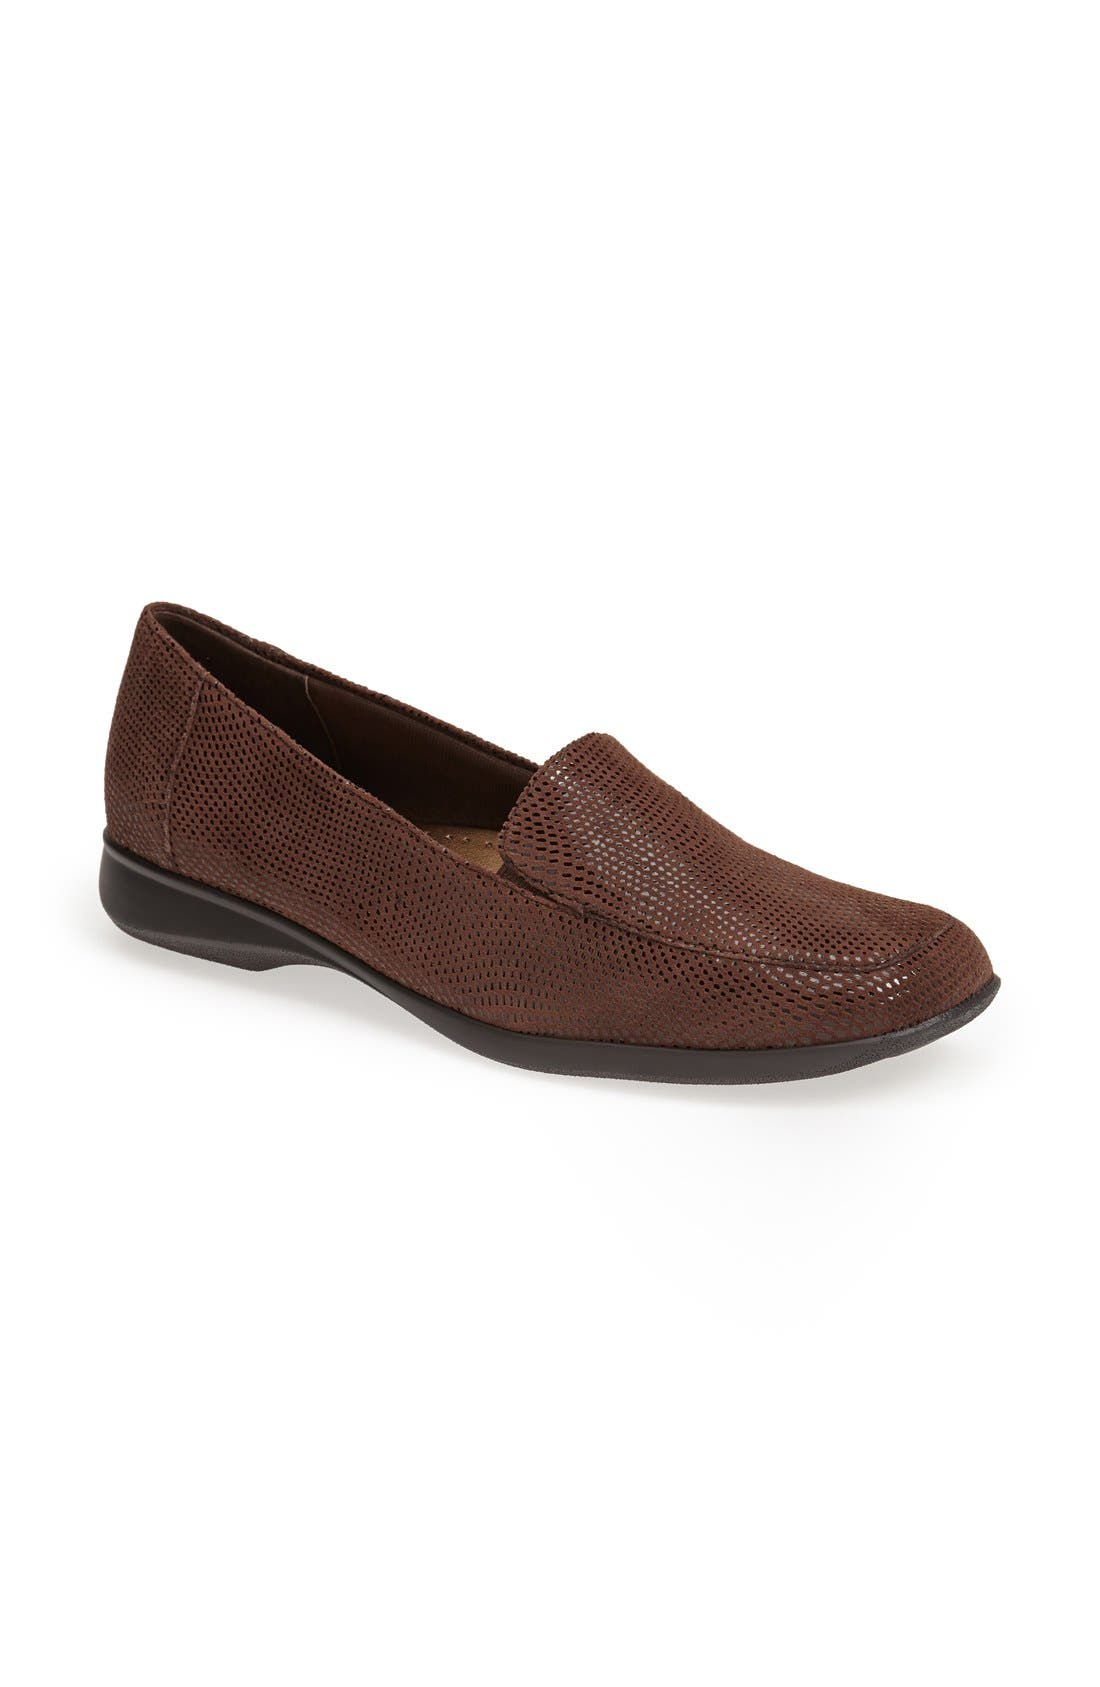 'Jenn' Loafer,                             Alternate thumbnail 15, color,